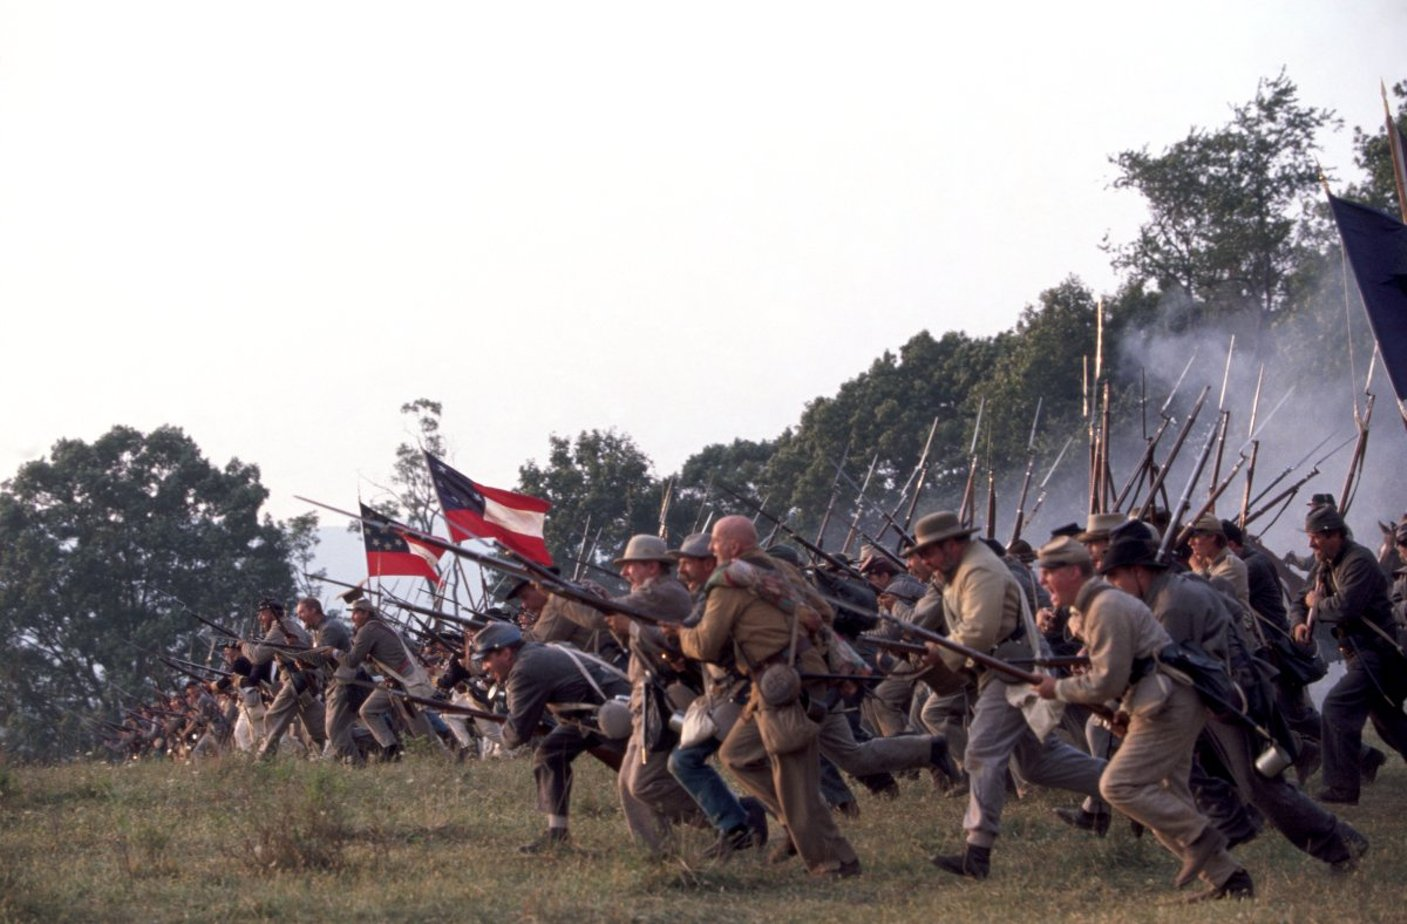 """a comparison of gods and generals """"if you have any interest in our history at all, """"gods and generals"""" is a stirring spectacular epic recreation that vibrates with such vivid emotional and atmospheric detail you'll feel like you're actually there."""